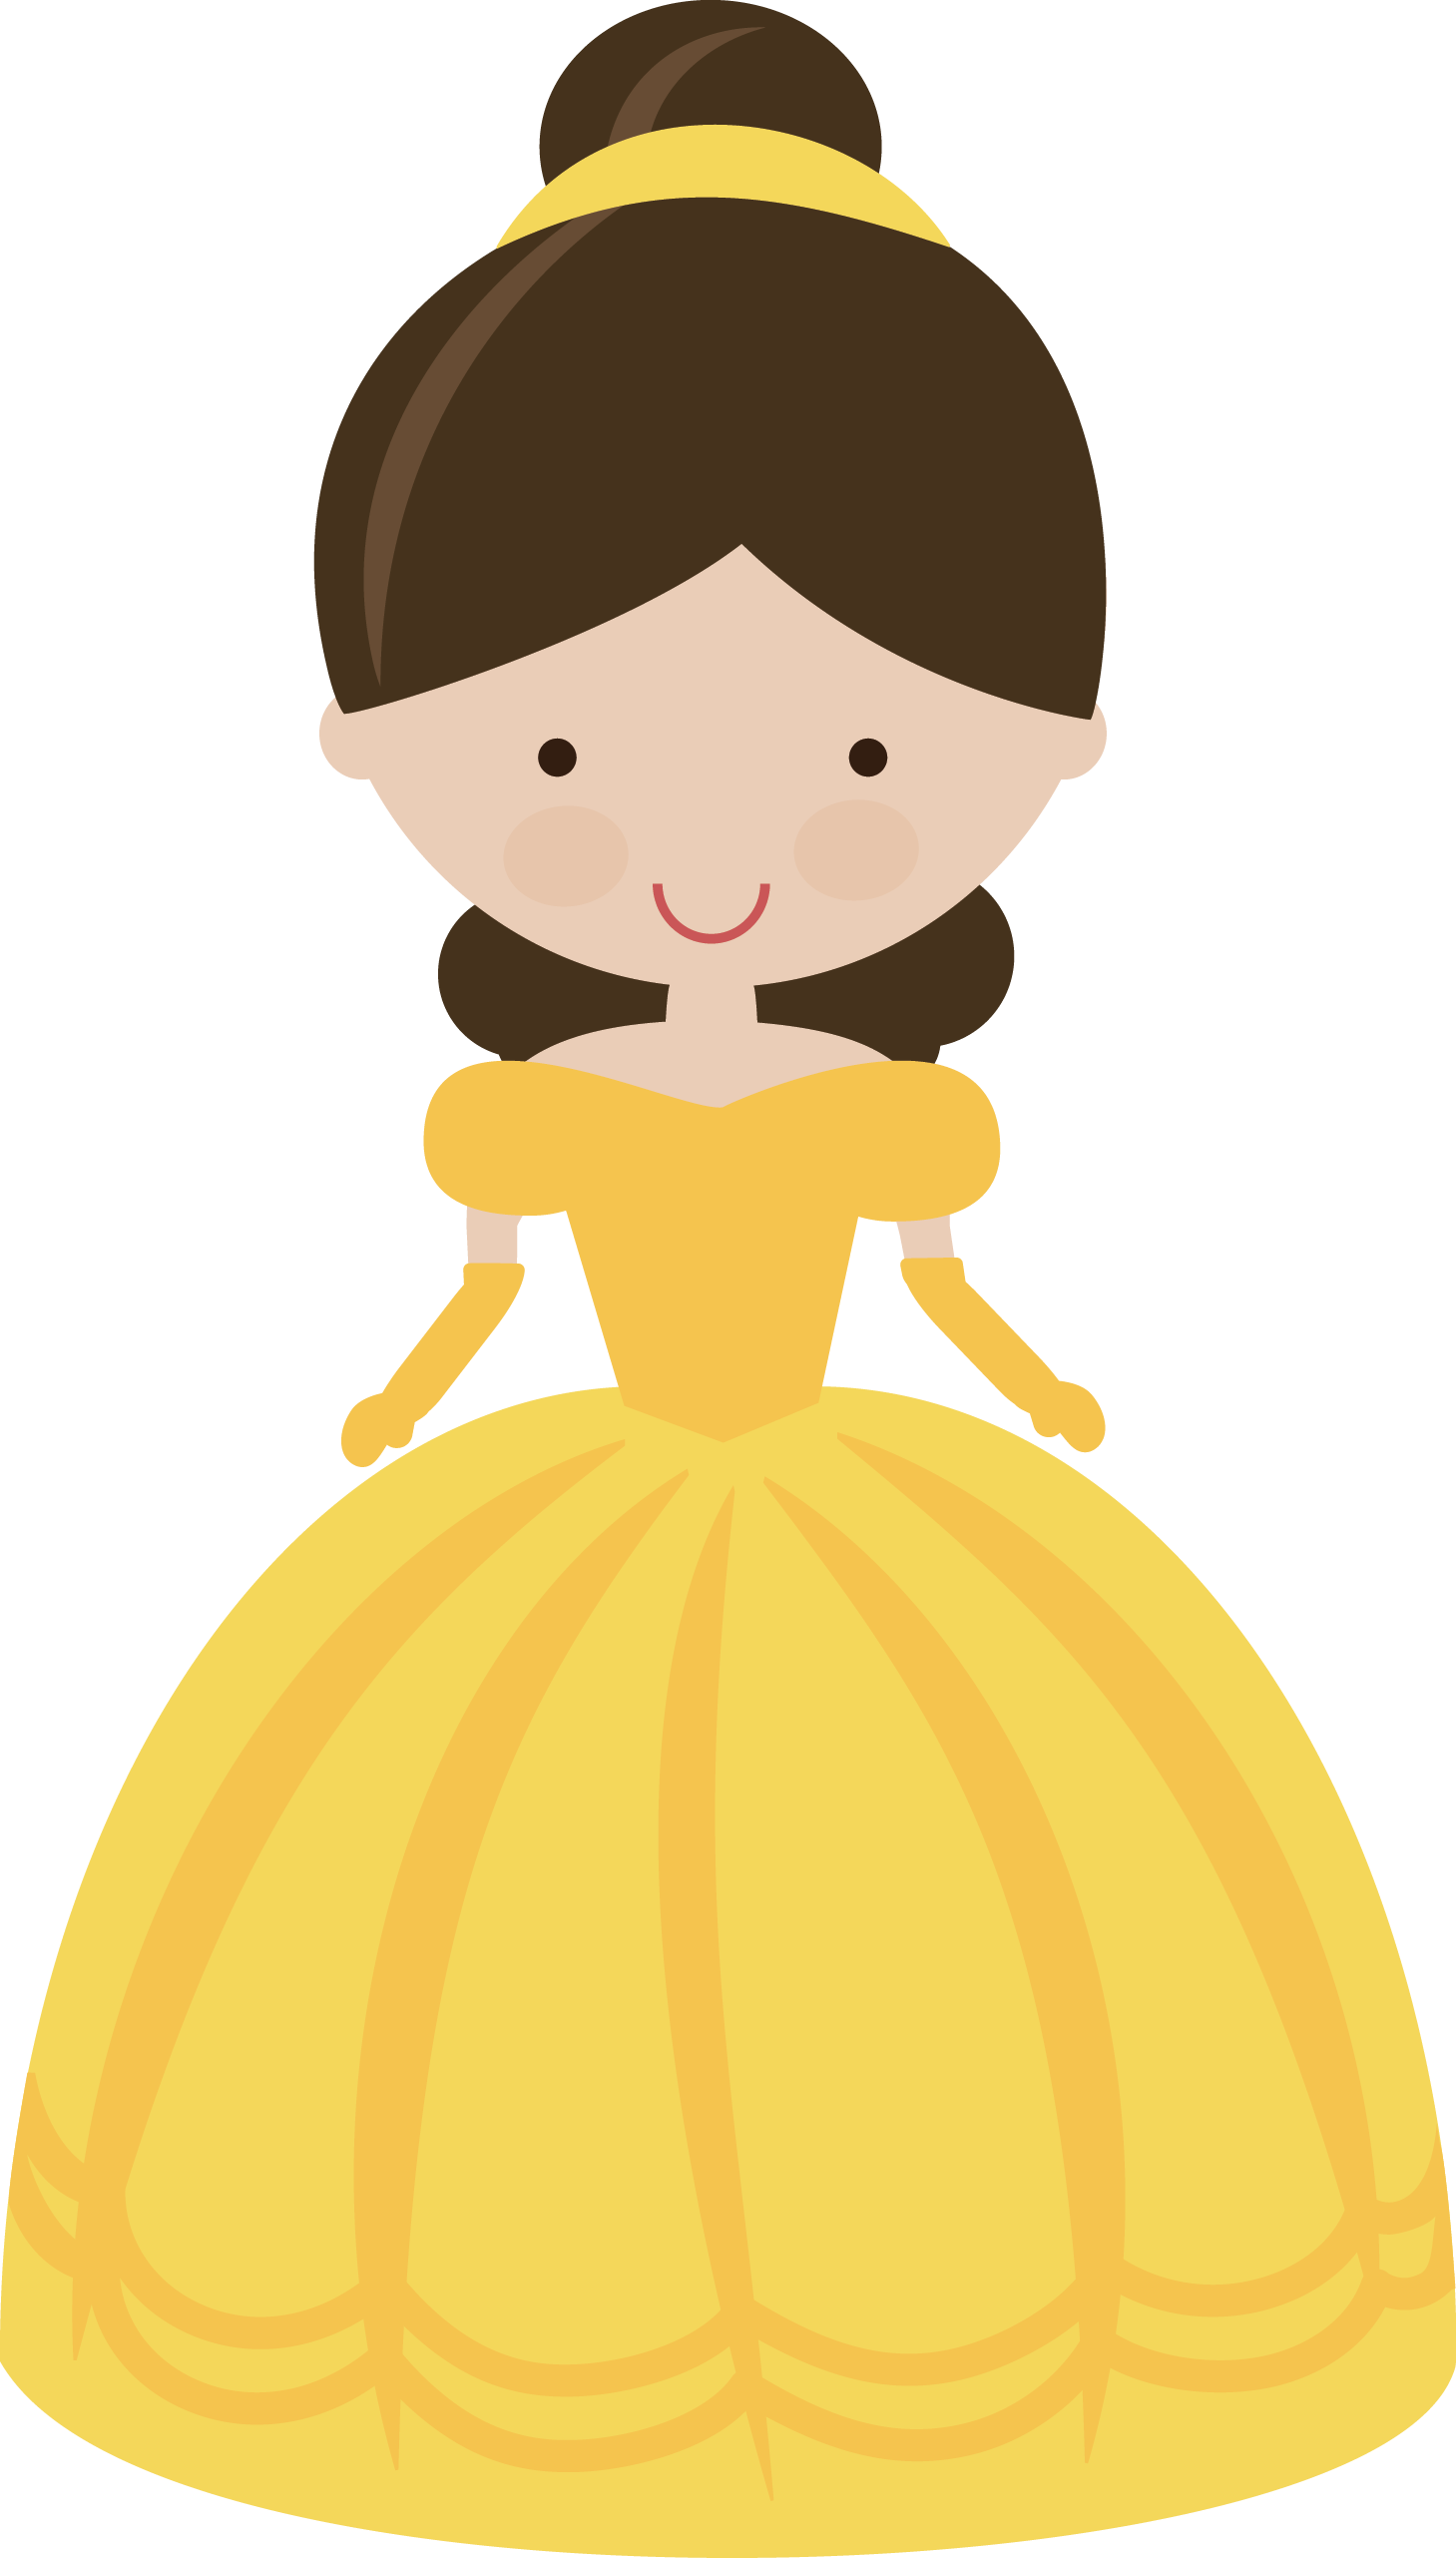 graphic Belle svg silhouette yellow. Fairytale princess in miss